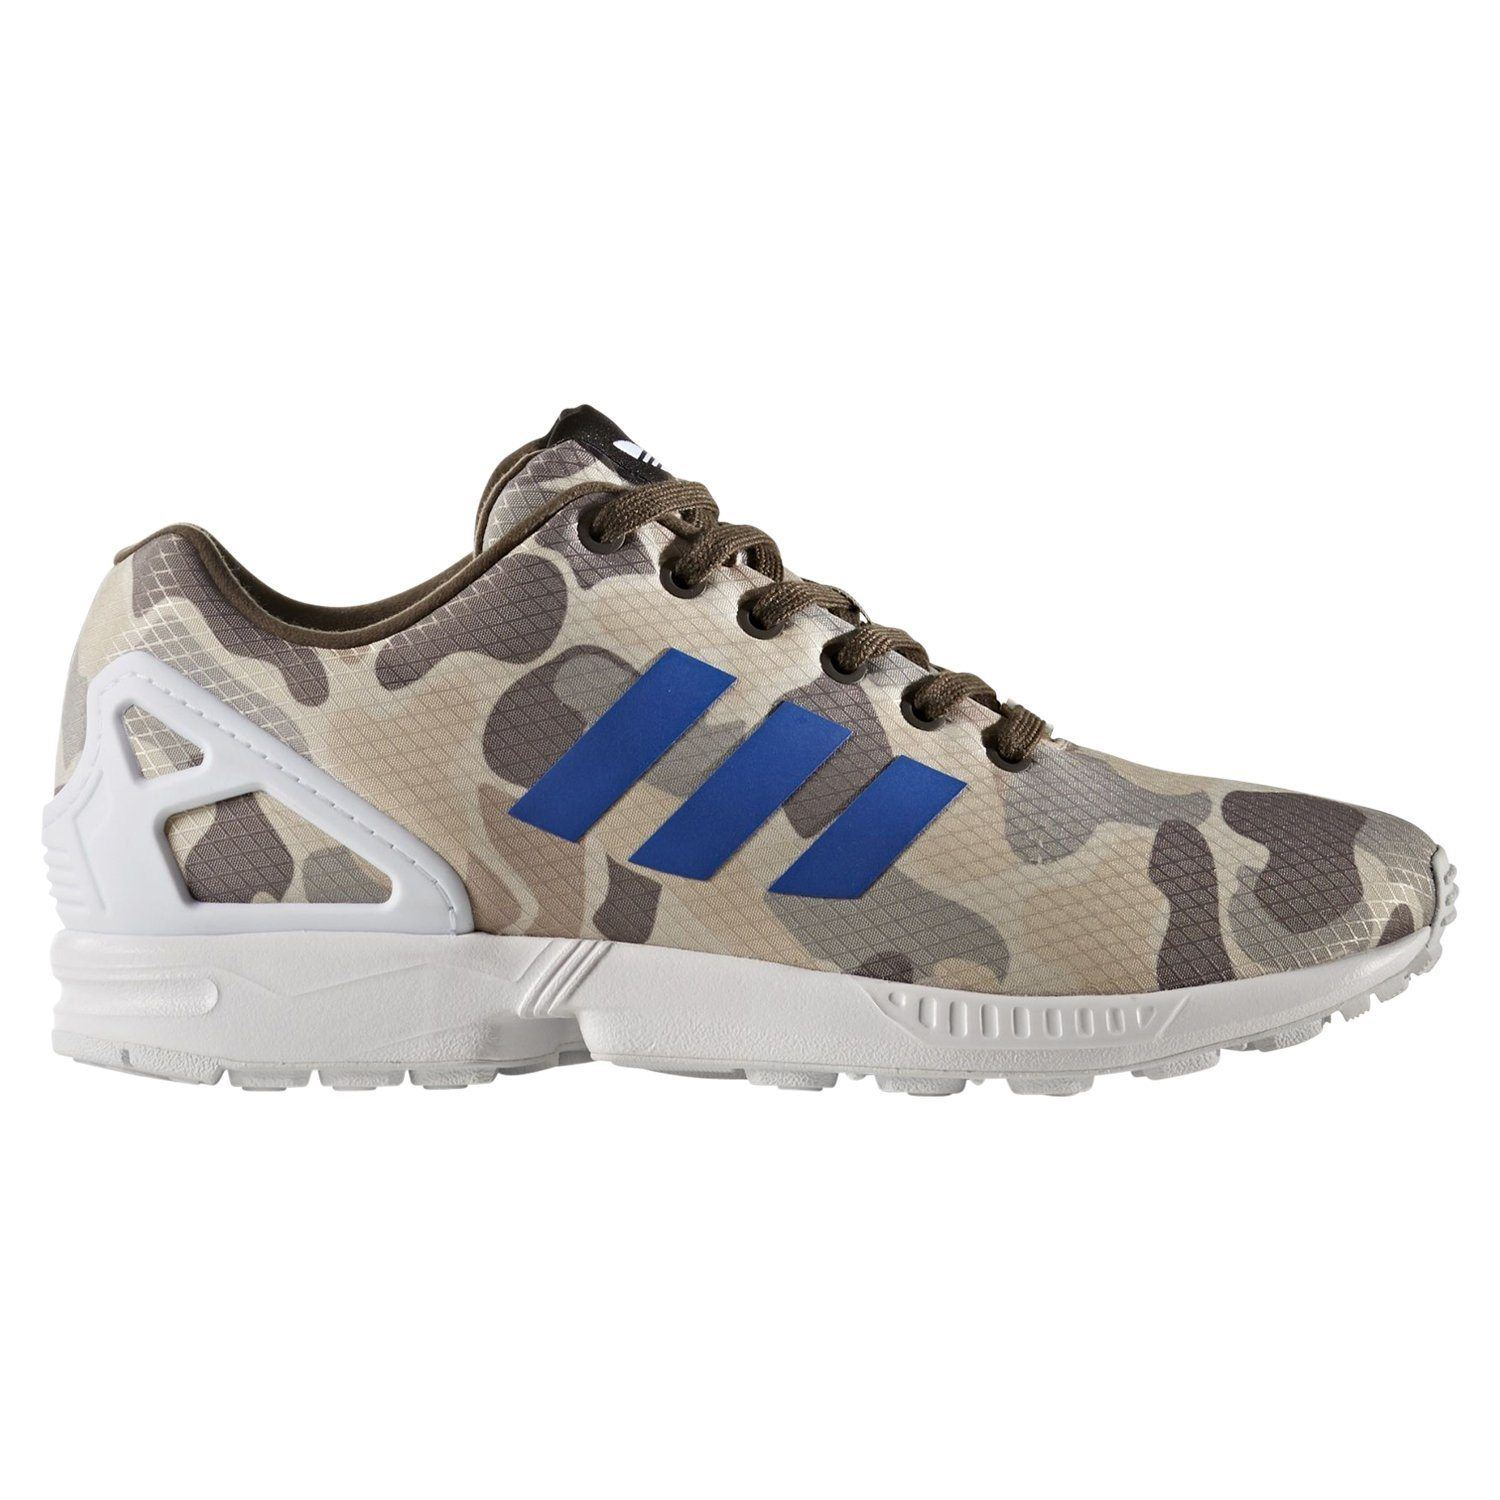 reputable site 9a7fe 6a22f Details about adidas ORIGINALS MEN S ZX FLUX TRAINERS MULTI CAMO SNEAKERS  SHOES RUNNING COMFY